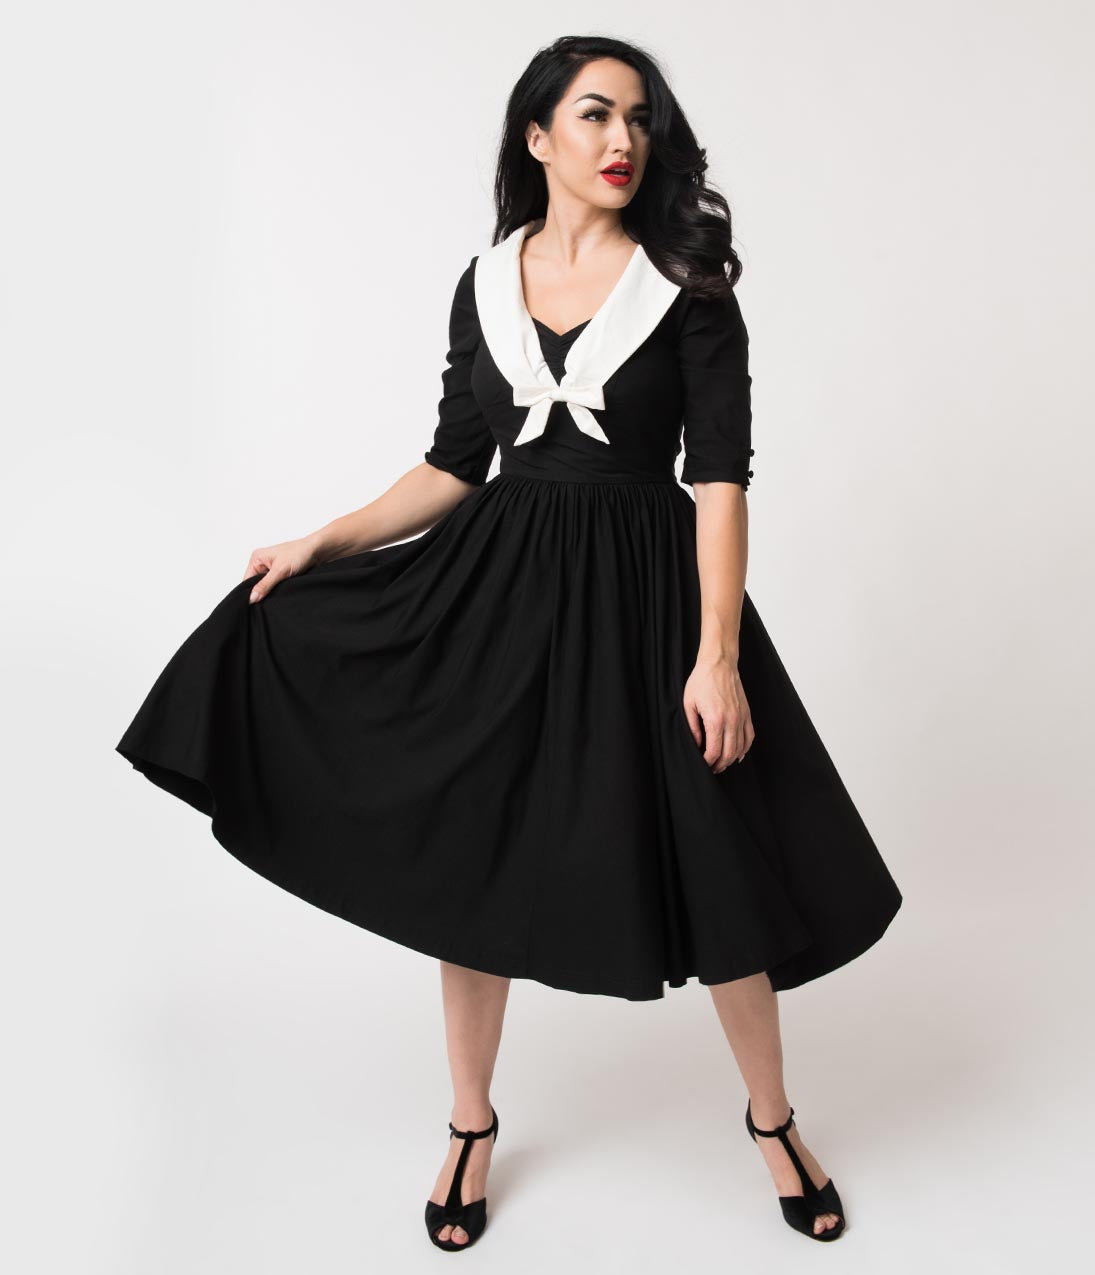 1950s Fashion History: Women's Clothing Unique Vintage 1950S Style Black  White Half Sleeve Julien Swing Dress $98.00 AT vintagedancer.com